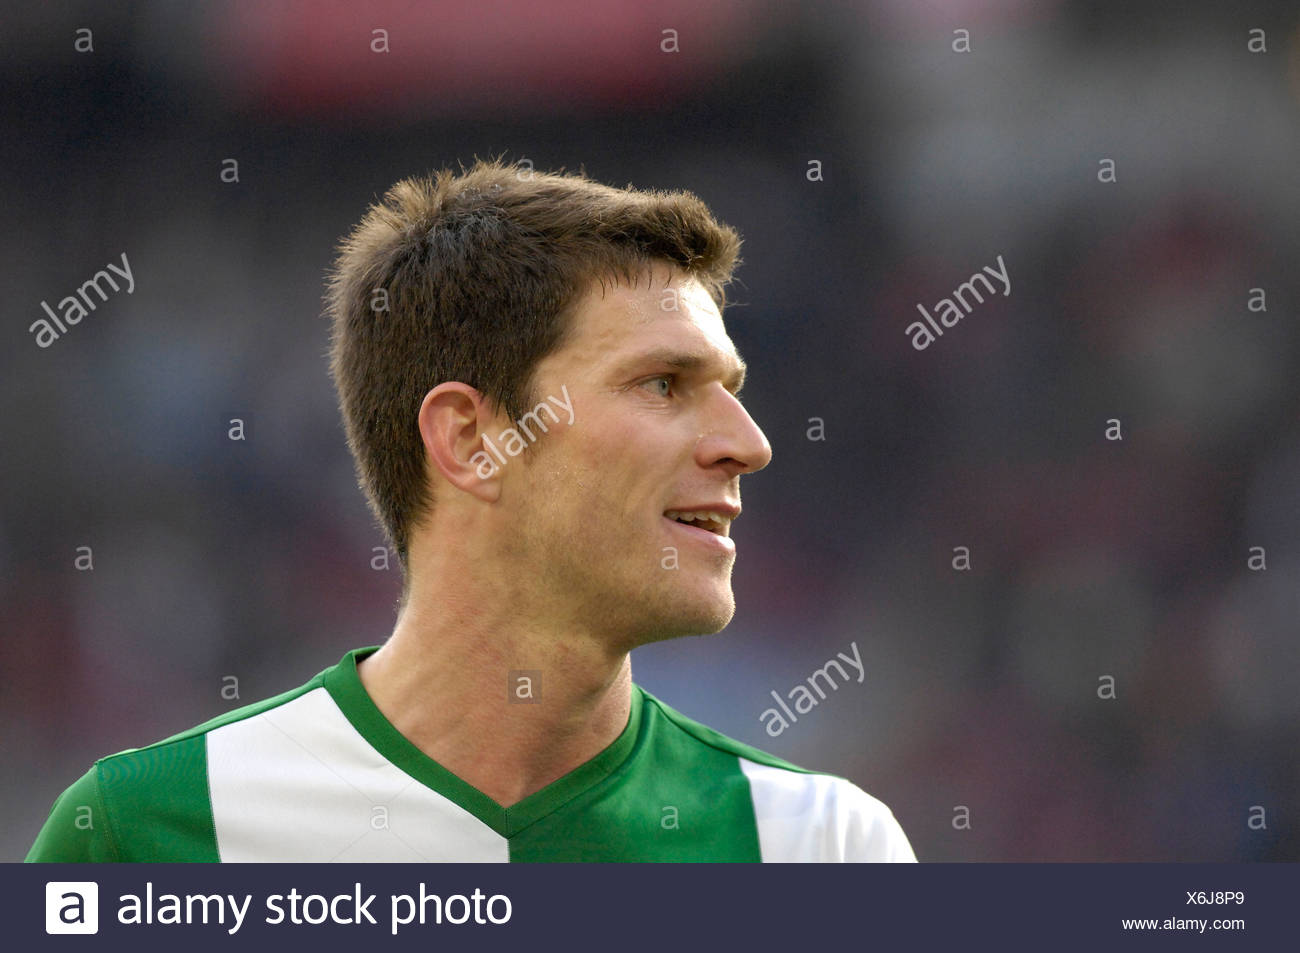 Peter VAN DER HEYDEN VfL Wolfsburg Stock Photo